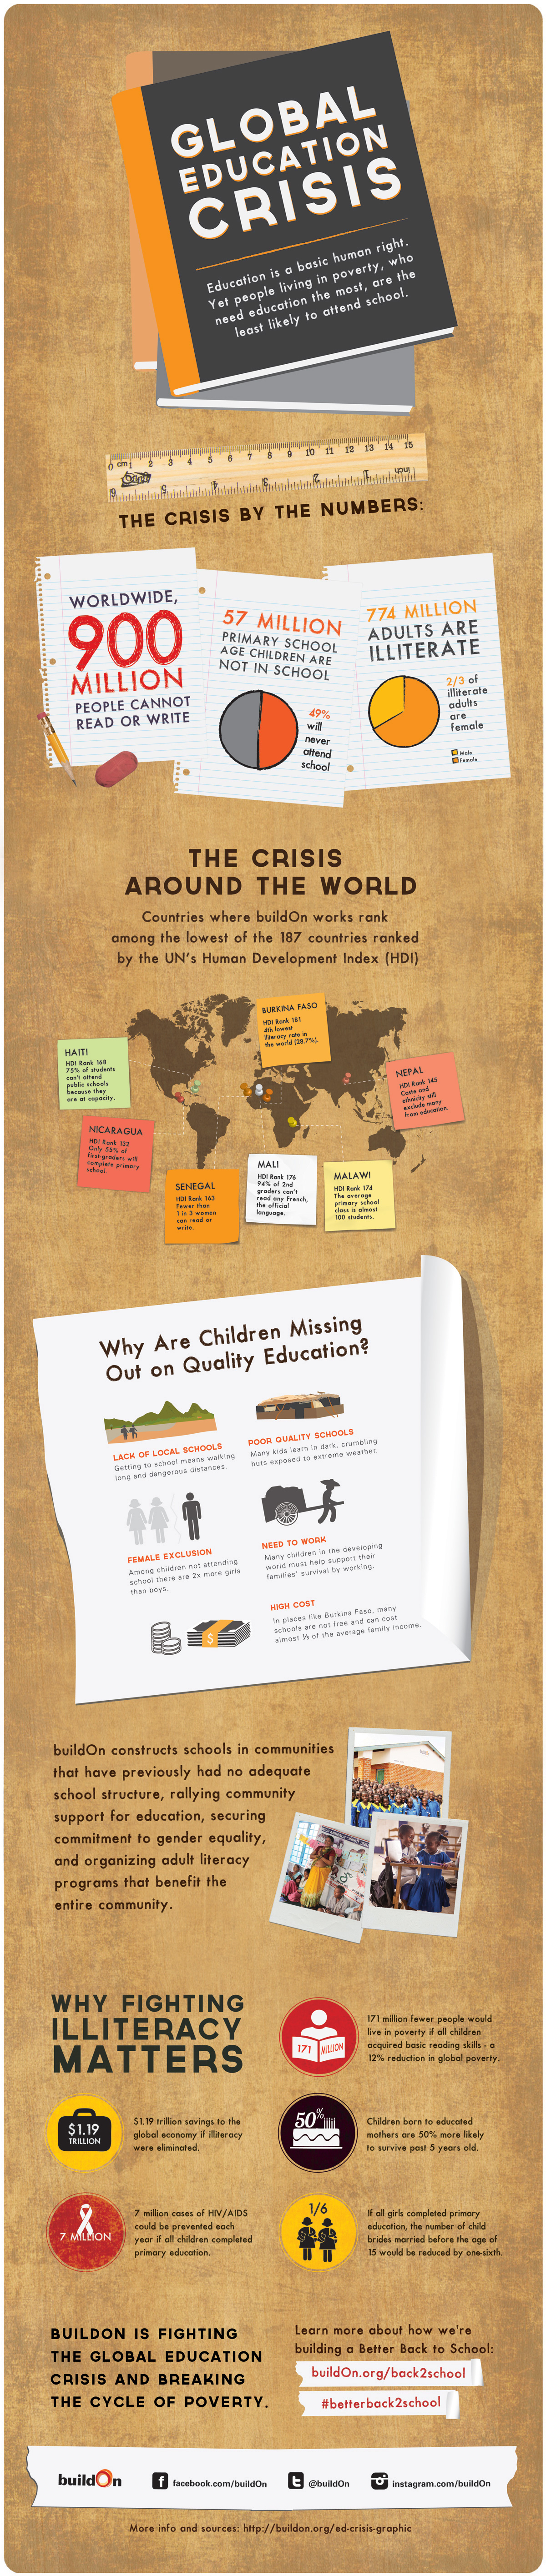 Global Education Crisis Infographic